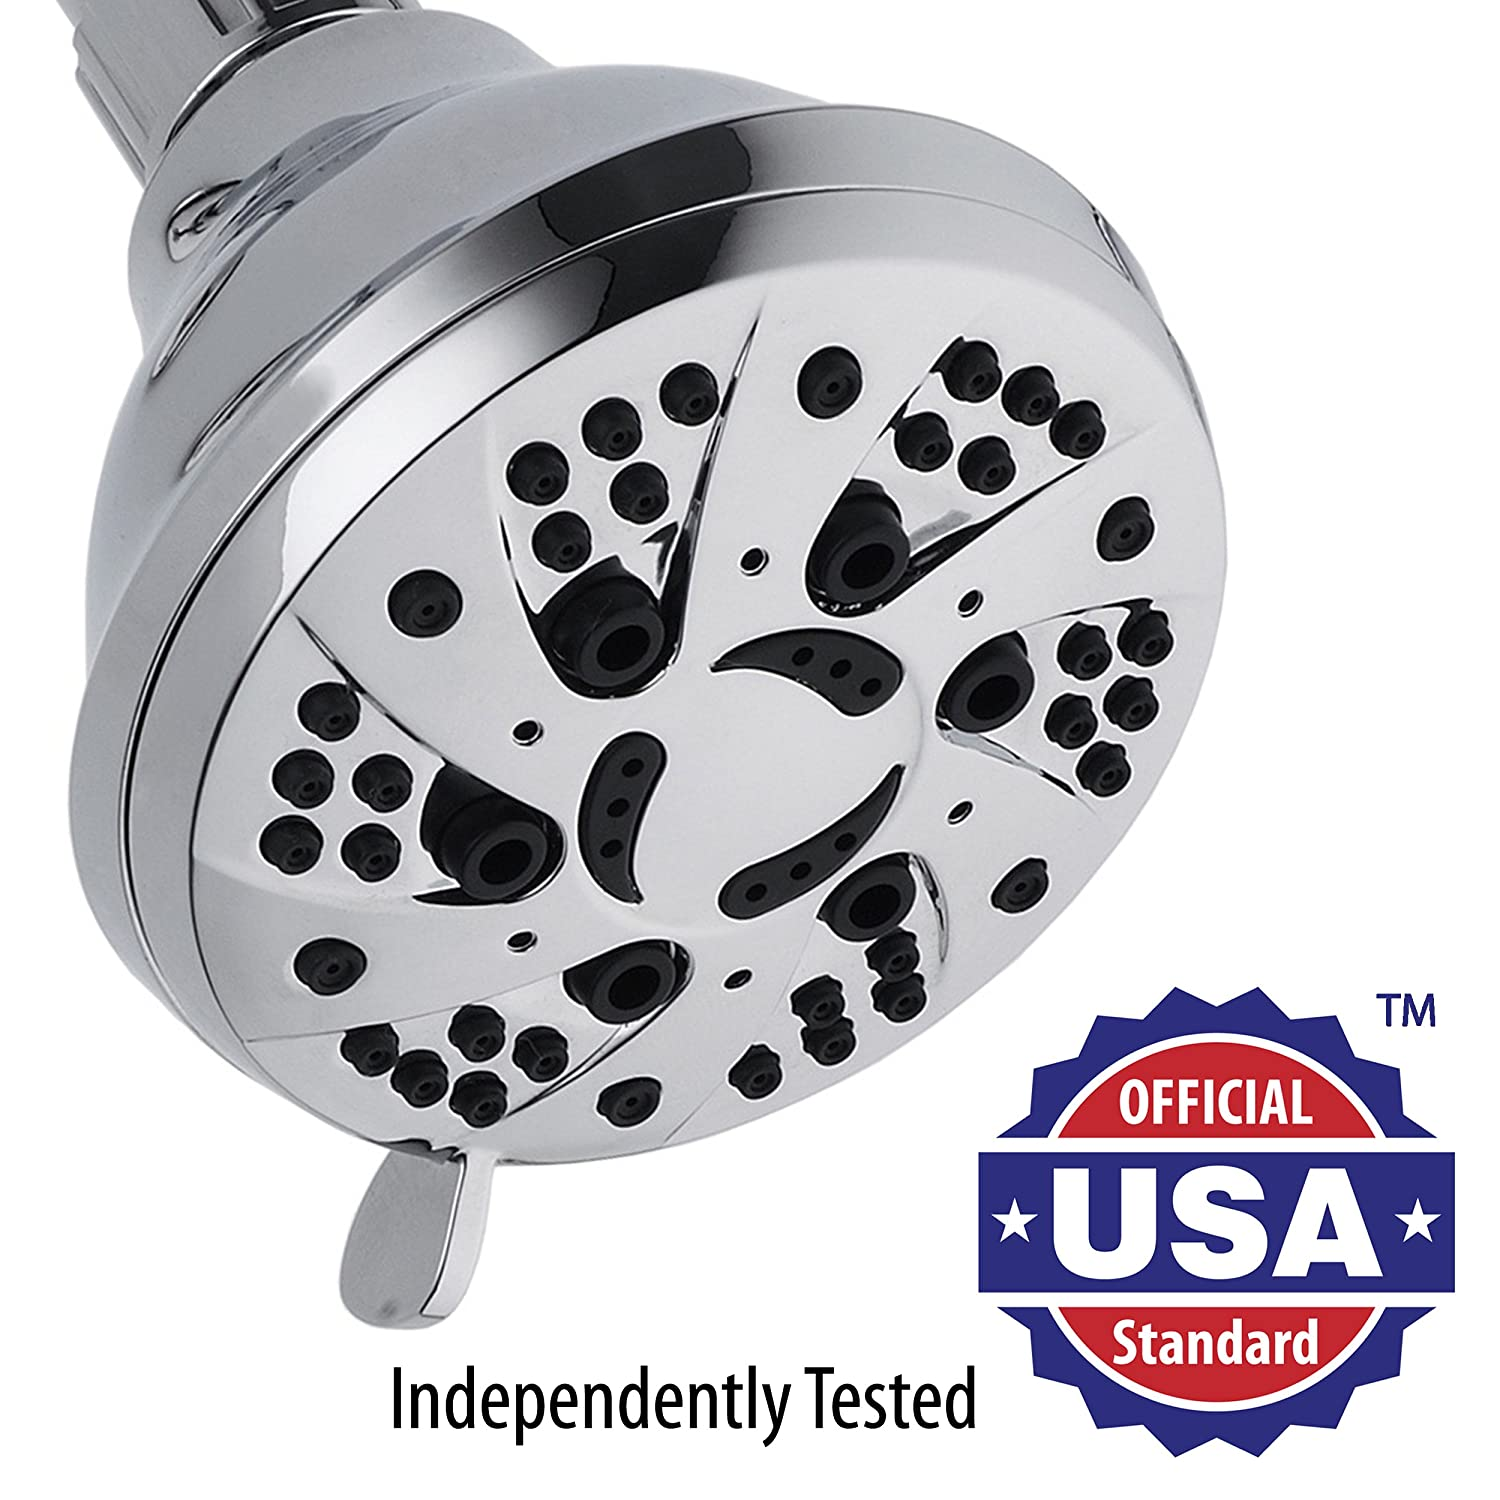 AquaDance High-Pressure 6-setting 3.5-inch Shower Head for the ...